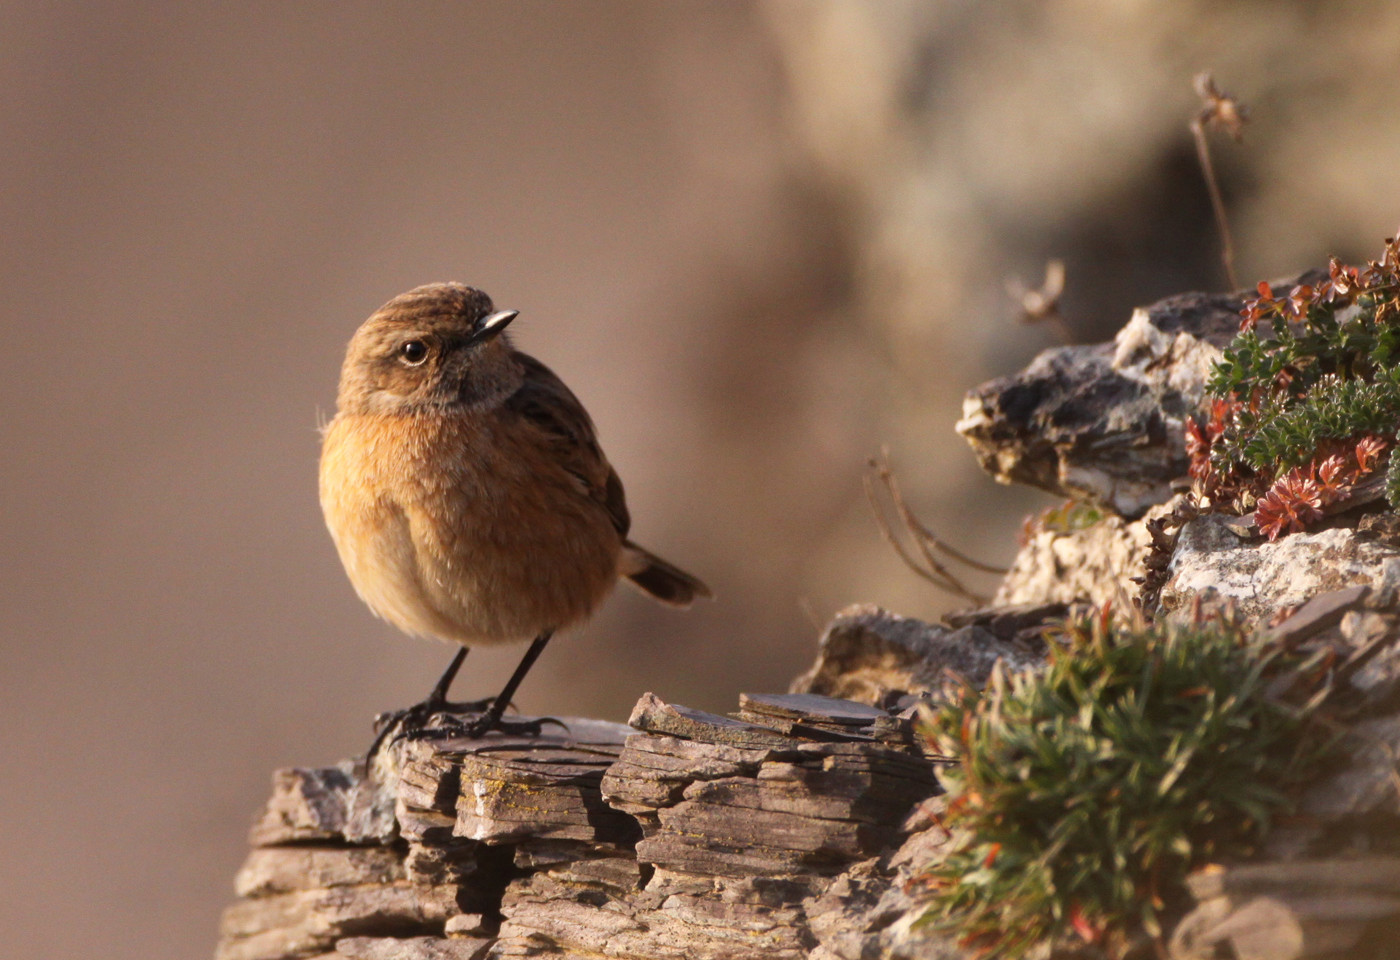 stonechat by Jane Pickles